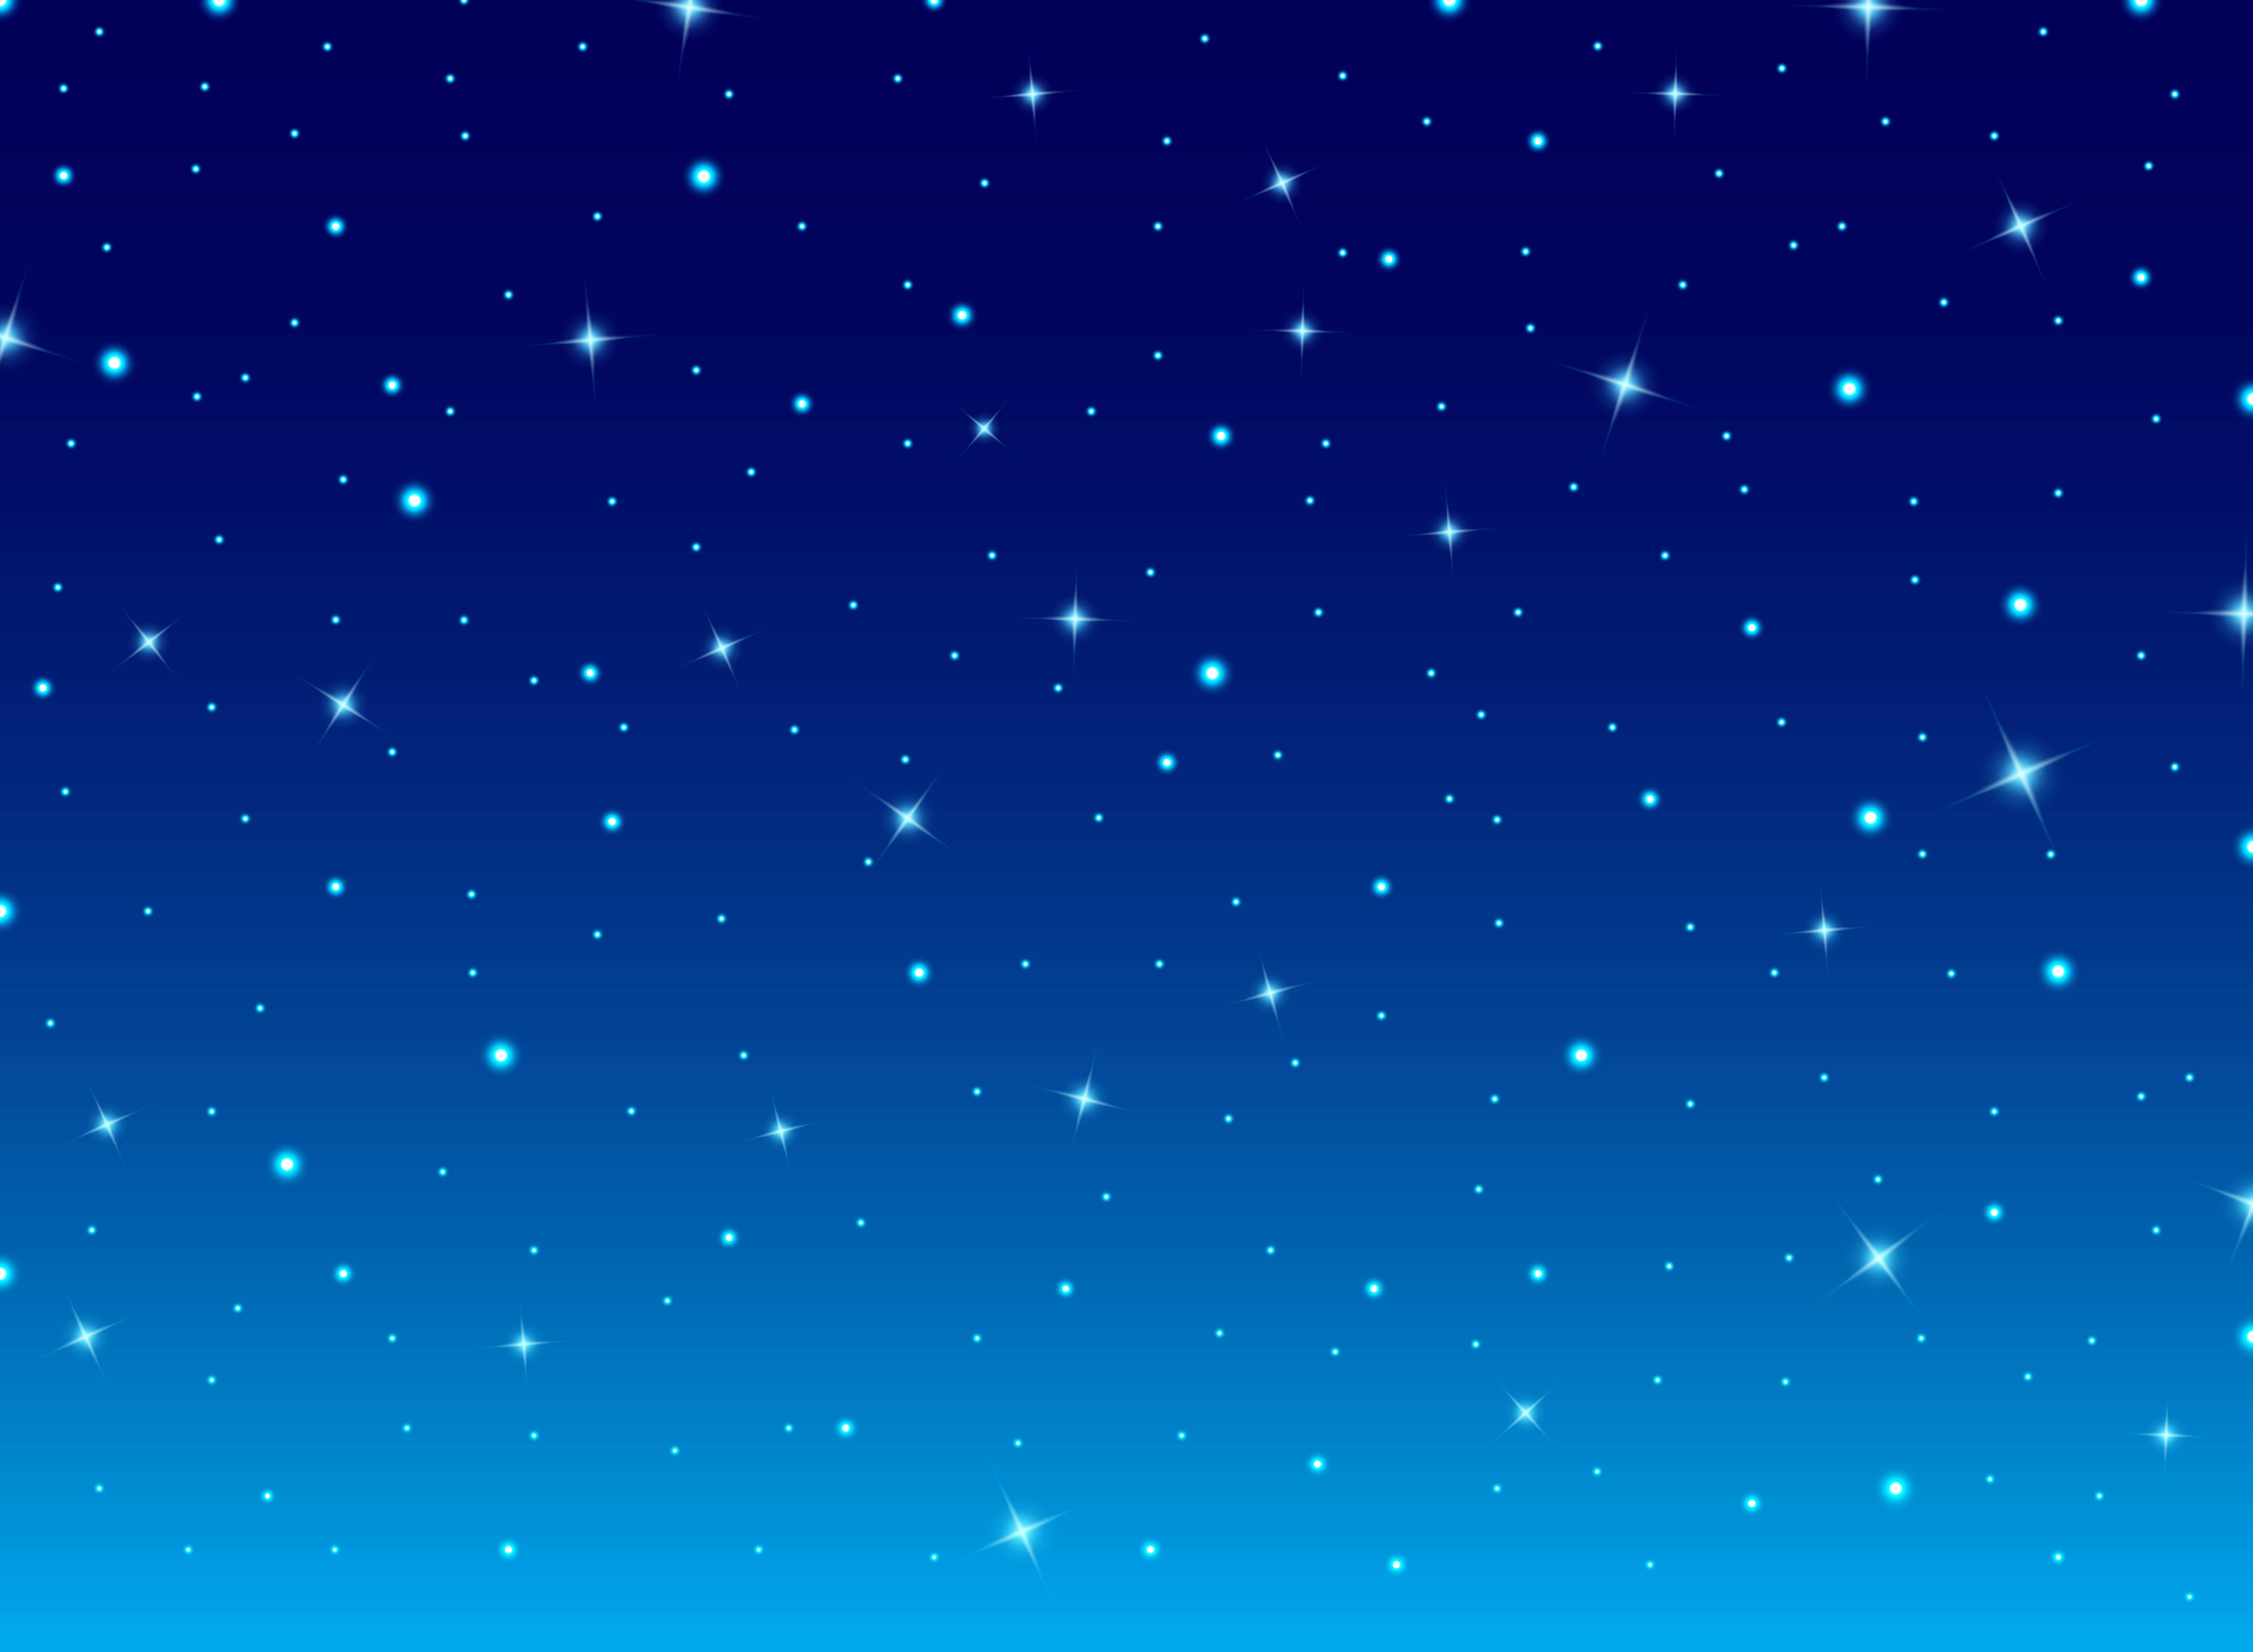 Abstract night blue sky with stars cosmos background. - Download Free  Vectors, Clipart Graphics & Vector Art